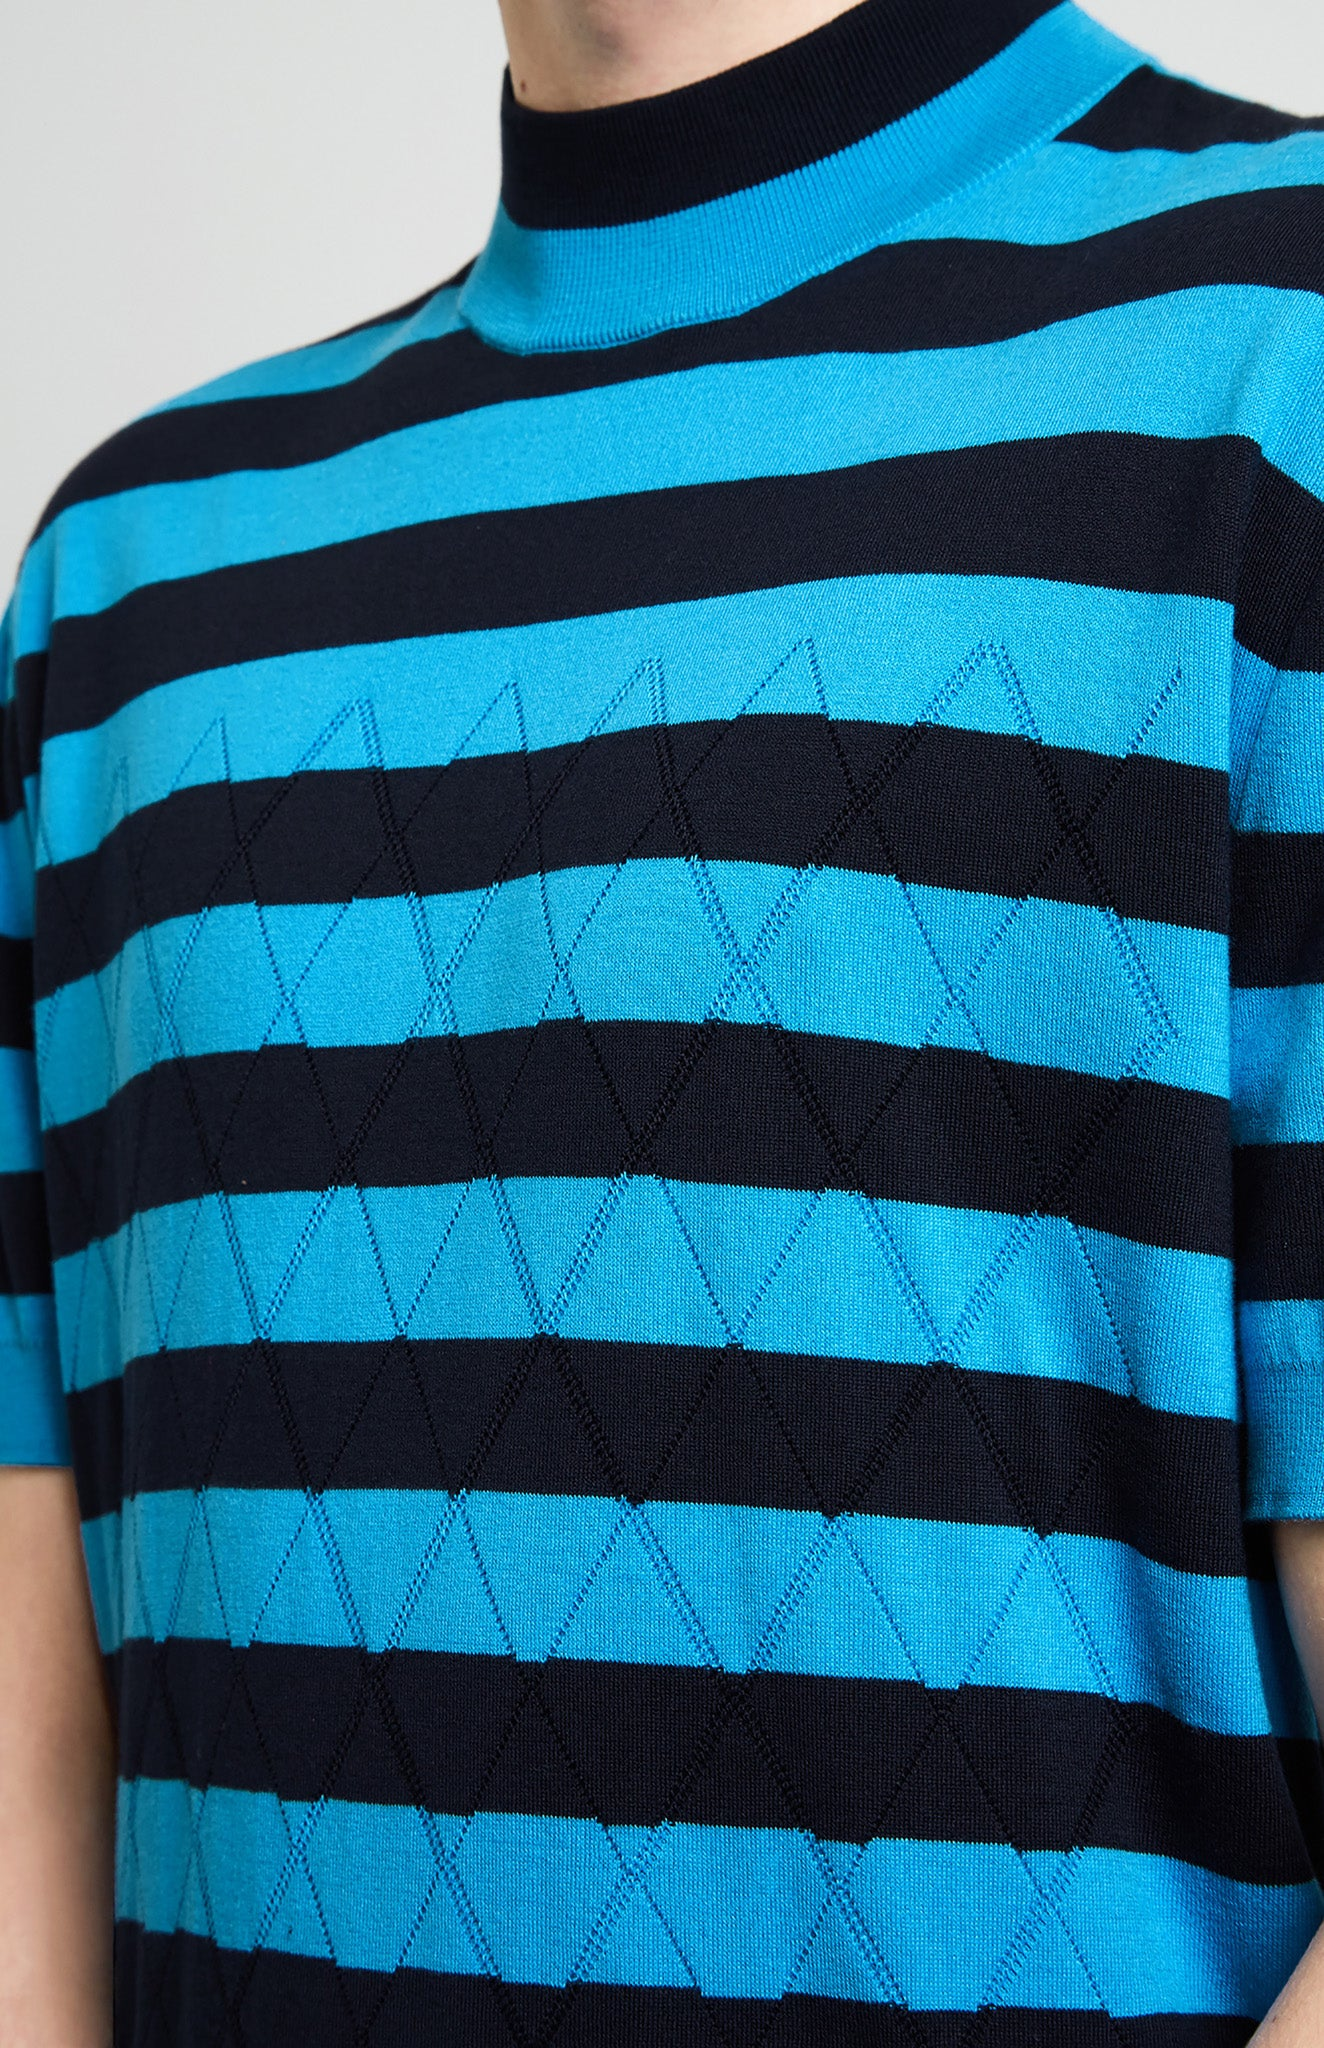 Mesh & Stripe Knitted T-shirt In Ink/Pool Blue